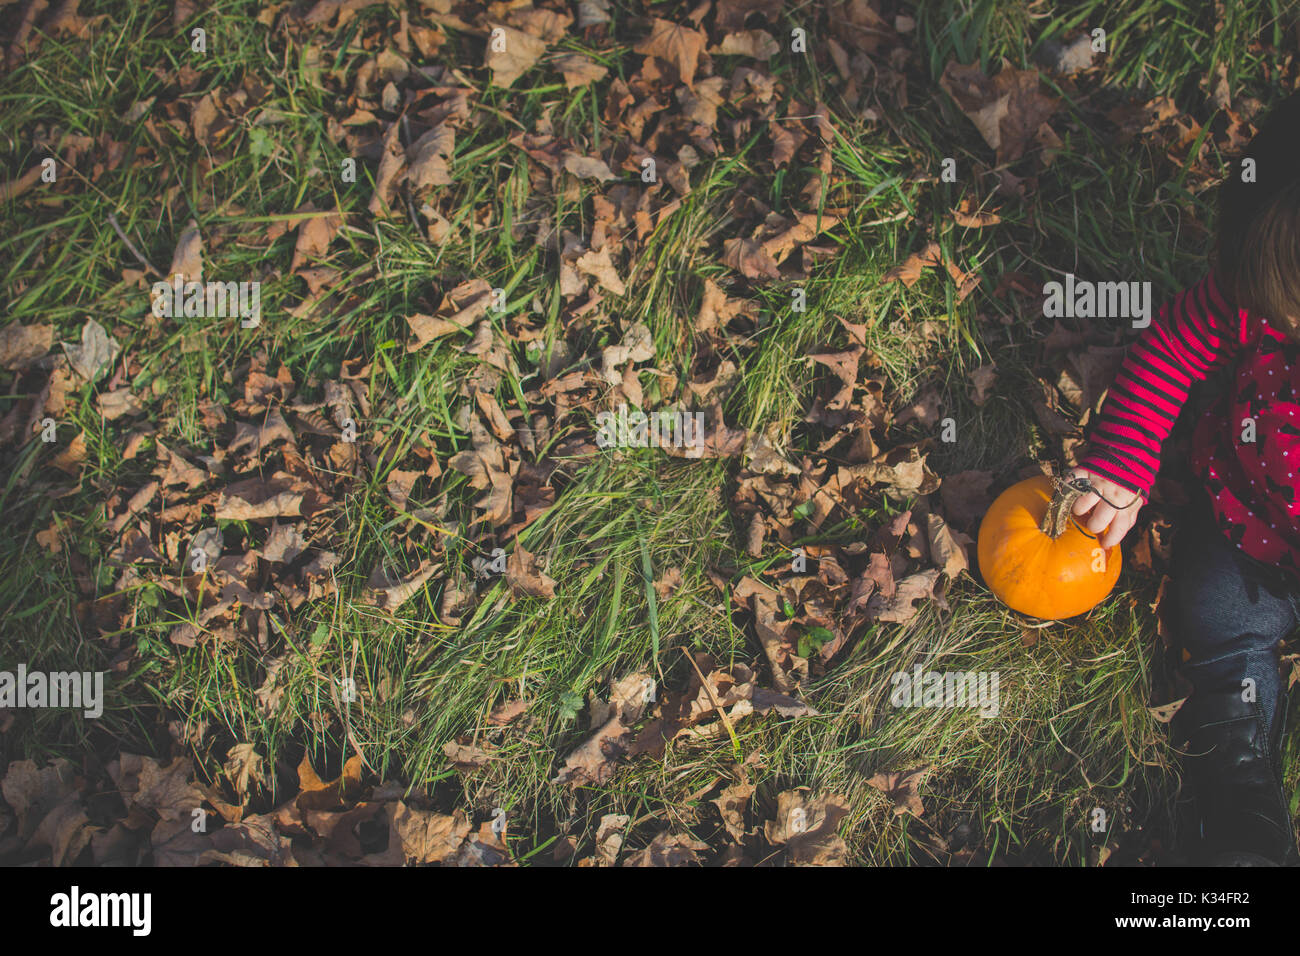 A baby sits in Fall leaves with her hand on a small pumpkin. - Stock Image